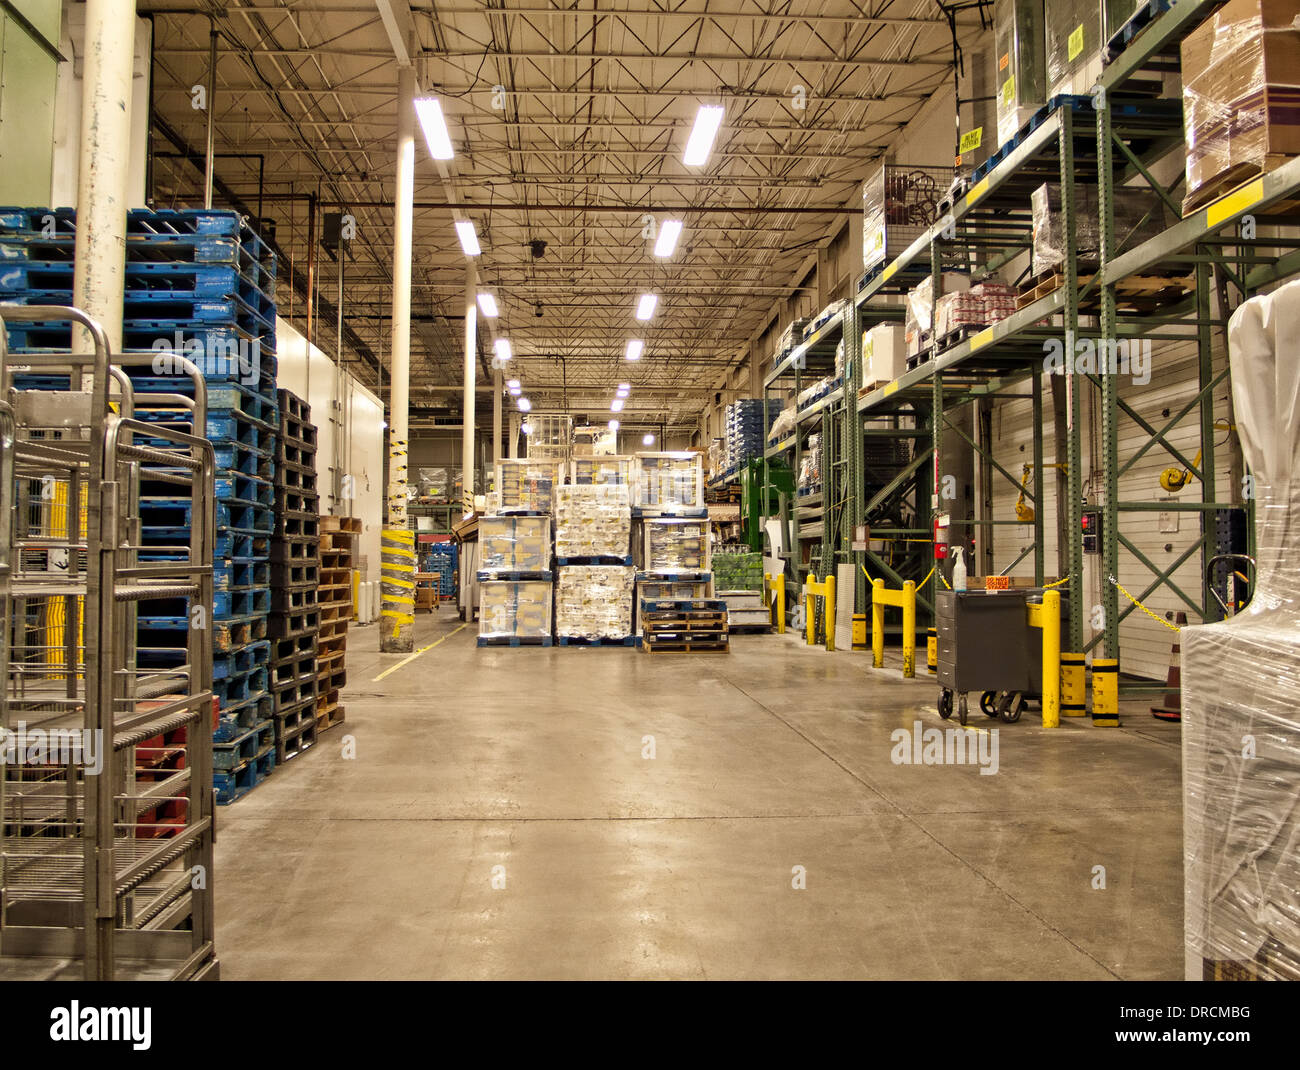 warehouse of a grocery store - Stock Image